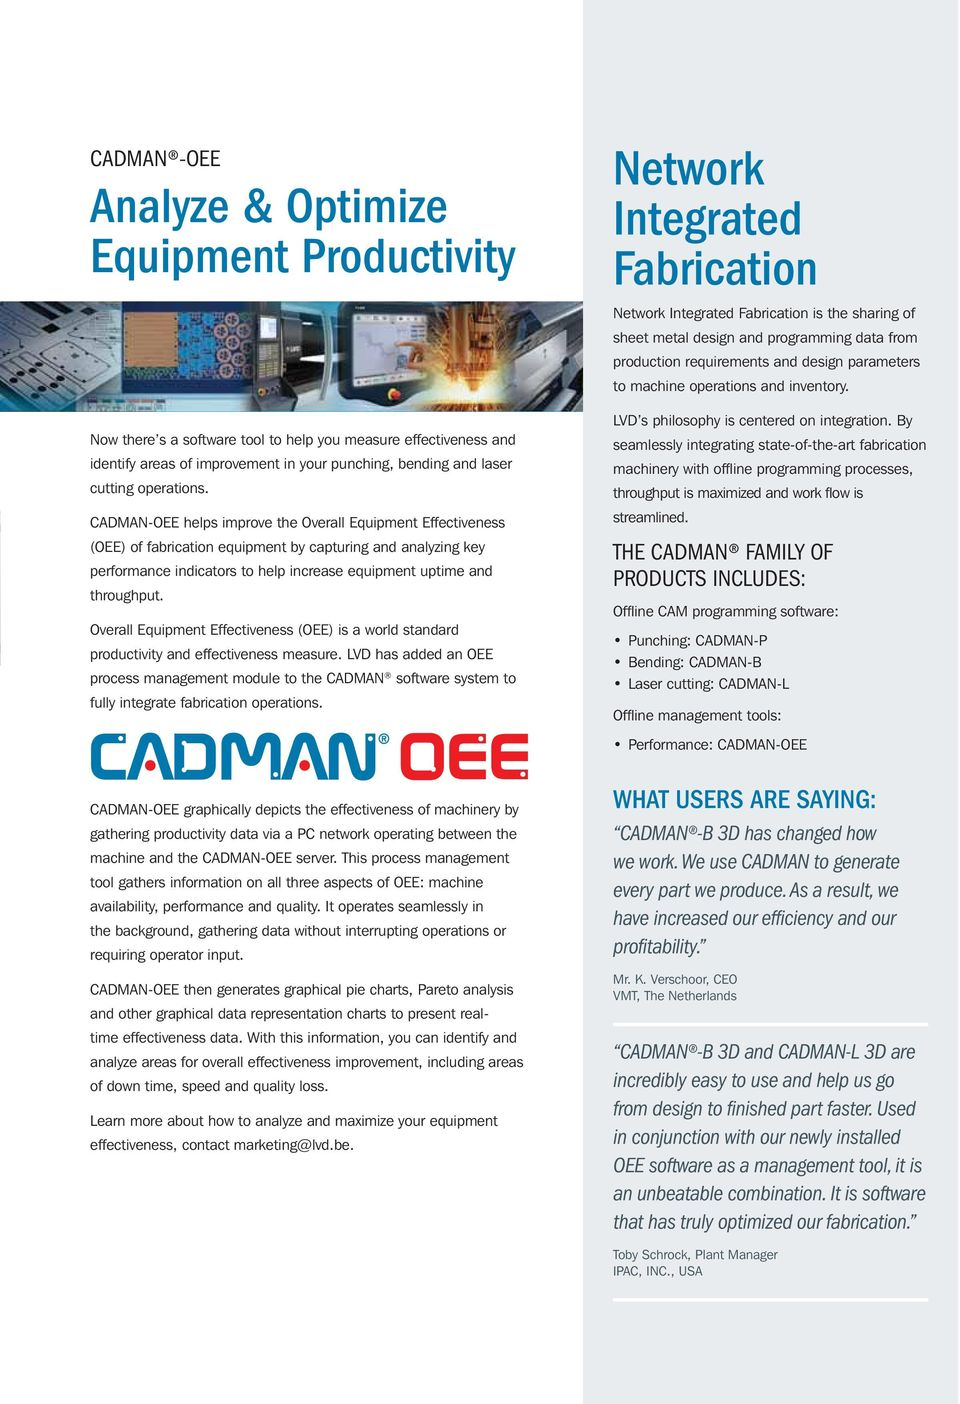 CADMAN-OEE helps improve the Overall Equipment Effectiveness (OEE) of fabrication equipment by capturing and analyzing key performance indicators to help increase equipment uptime and throughput.